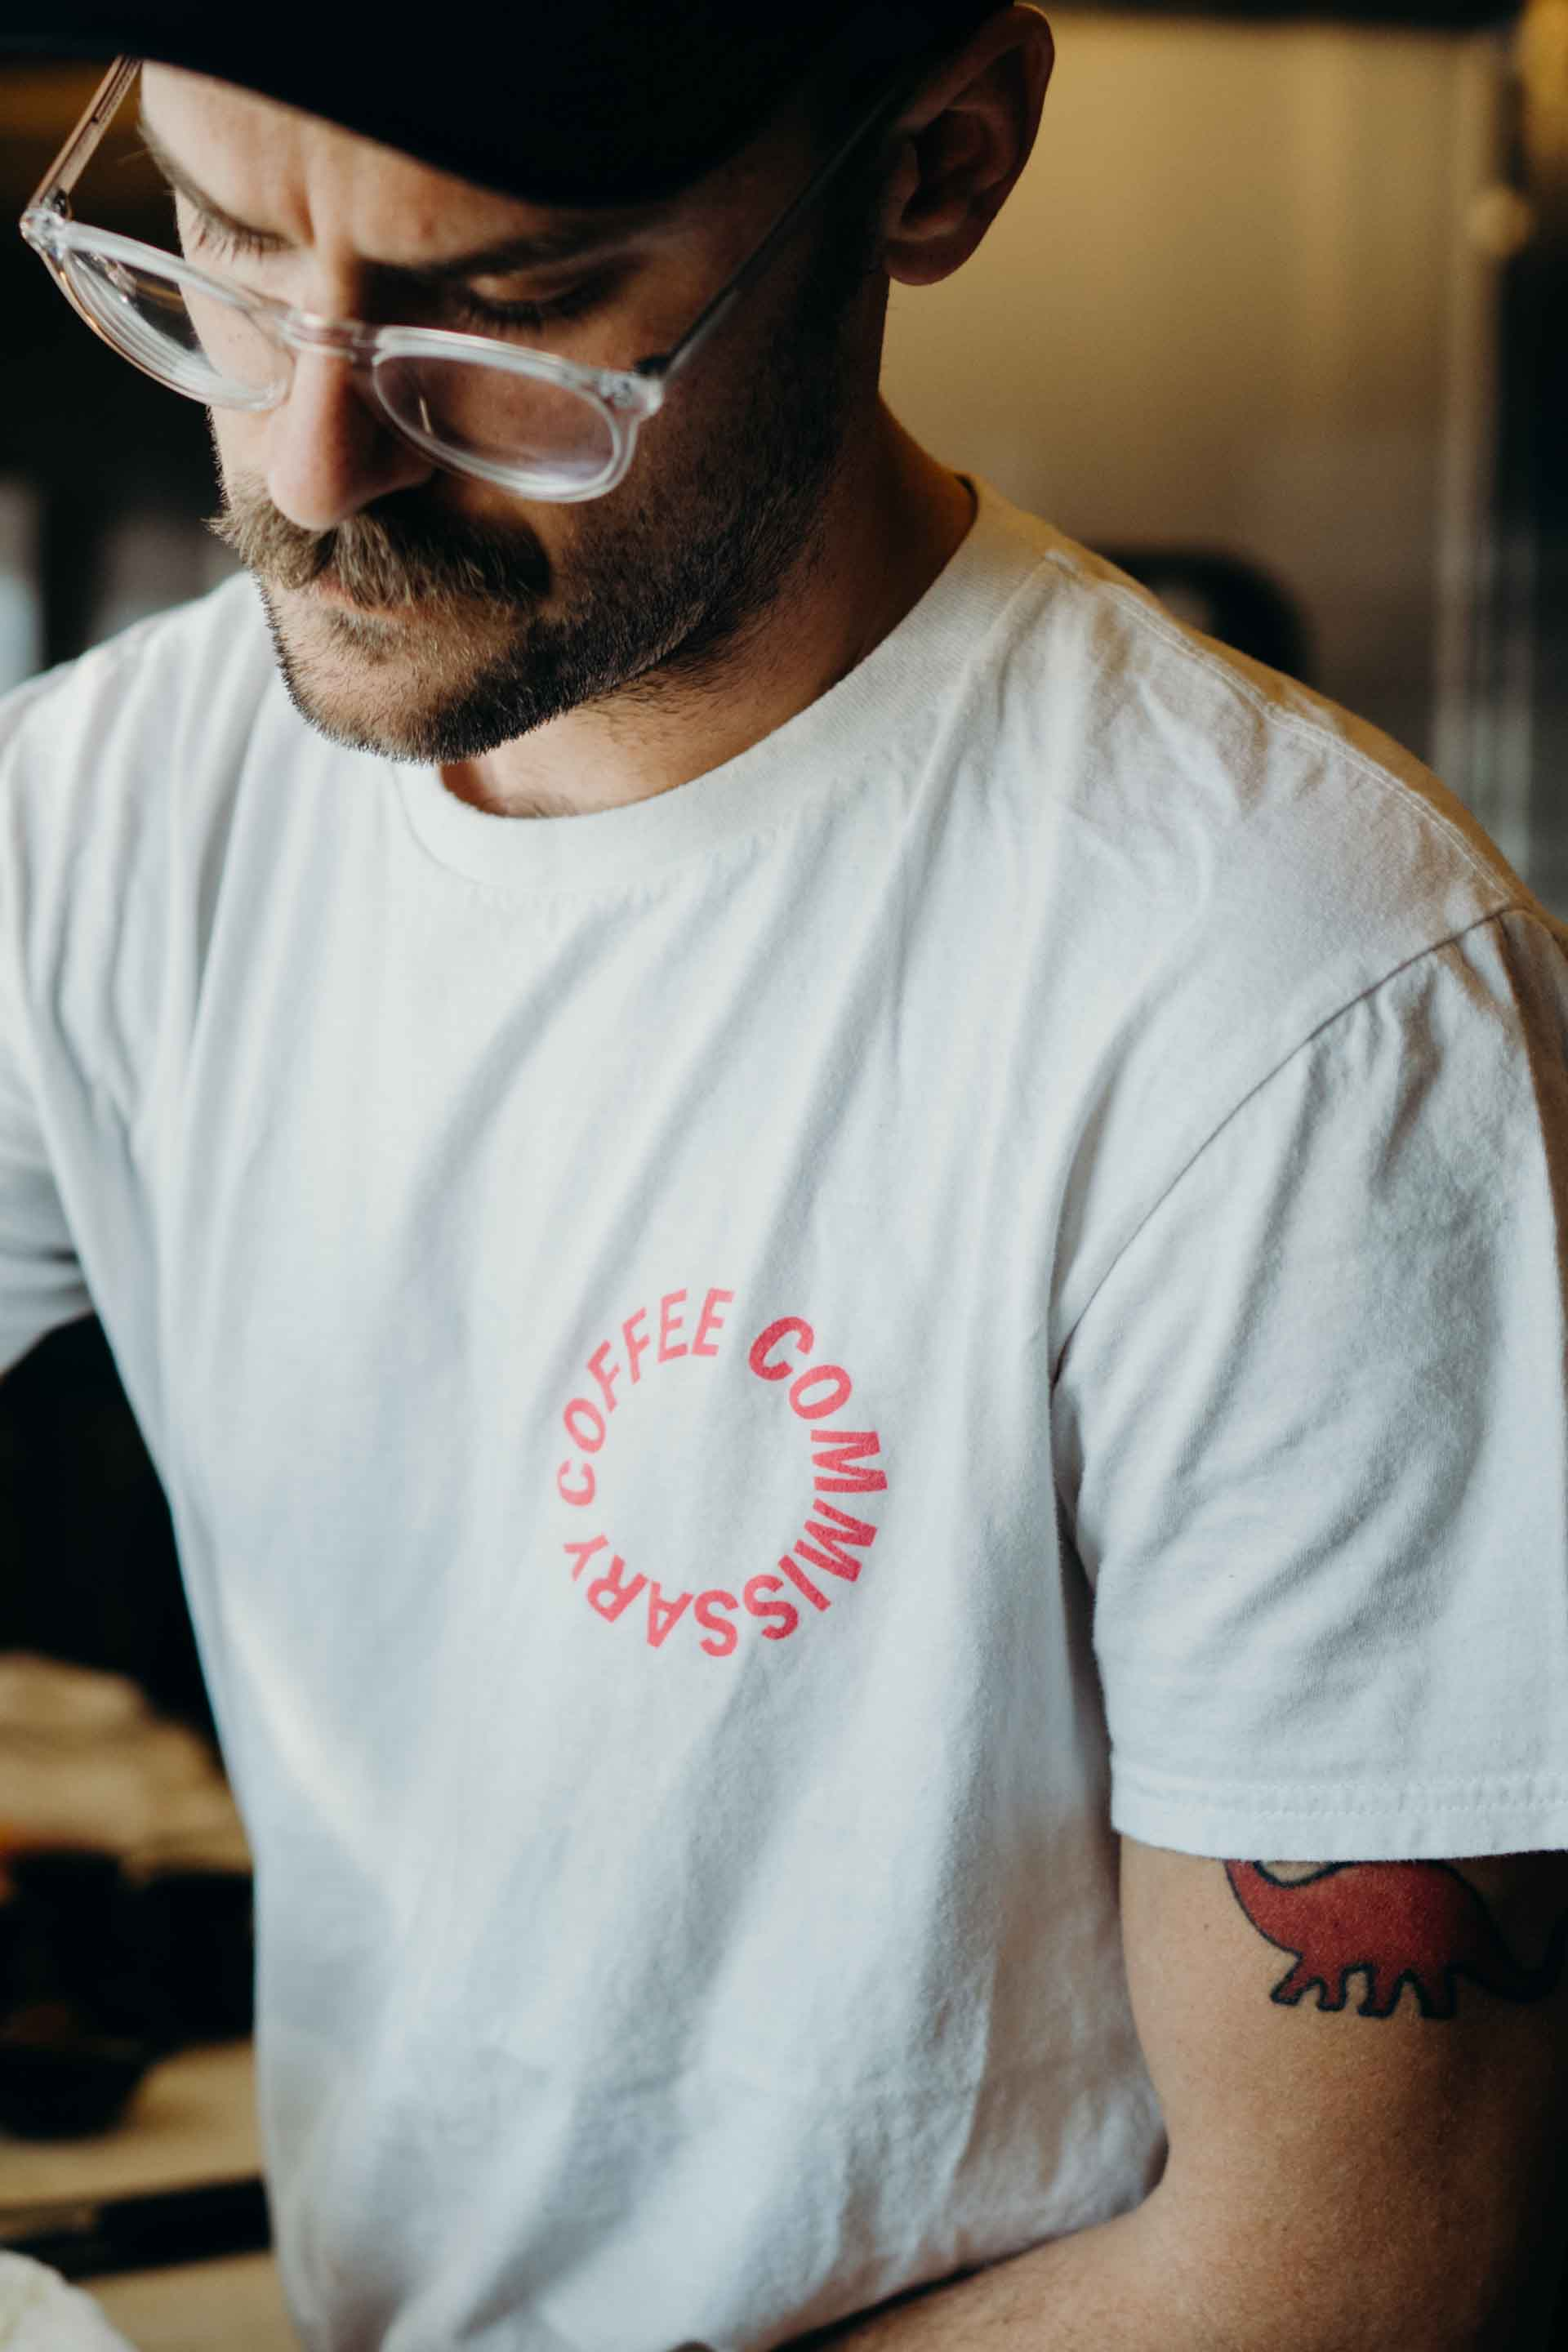 Coffee Commissary t-shirts